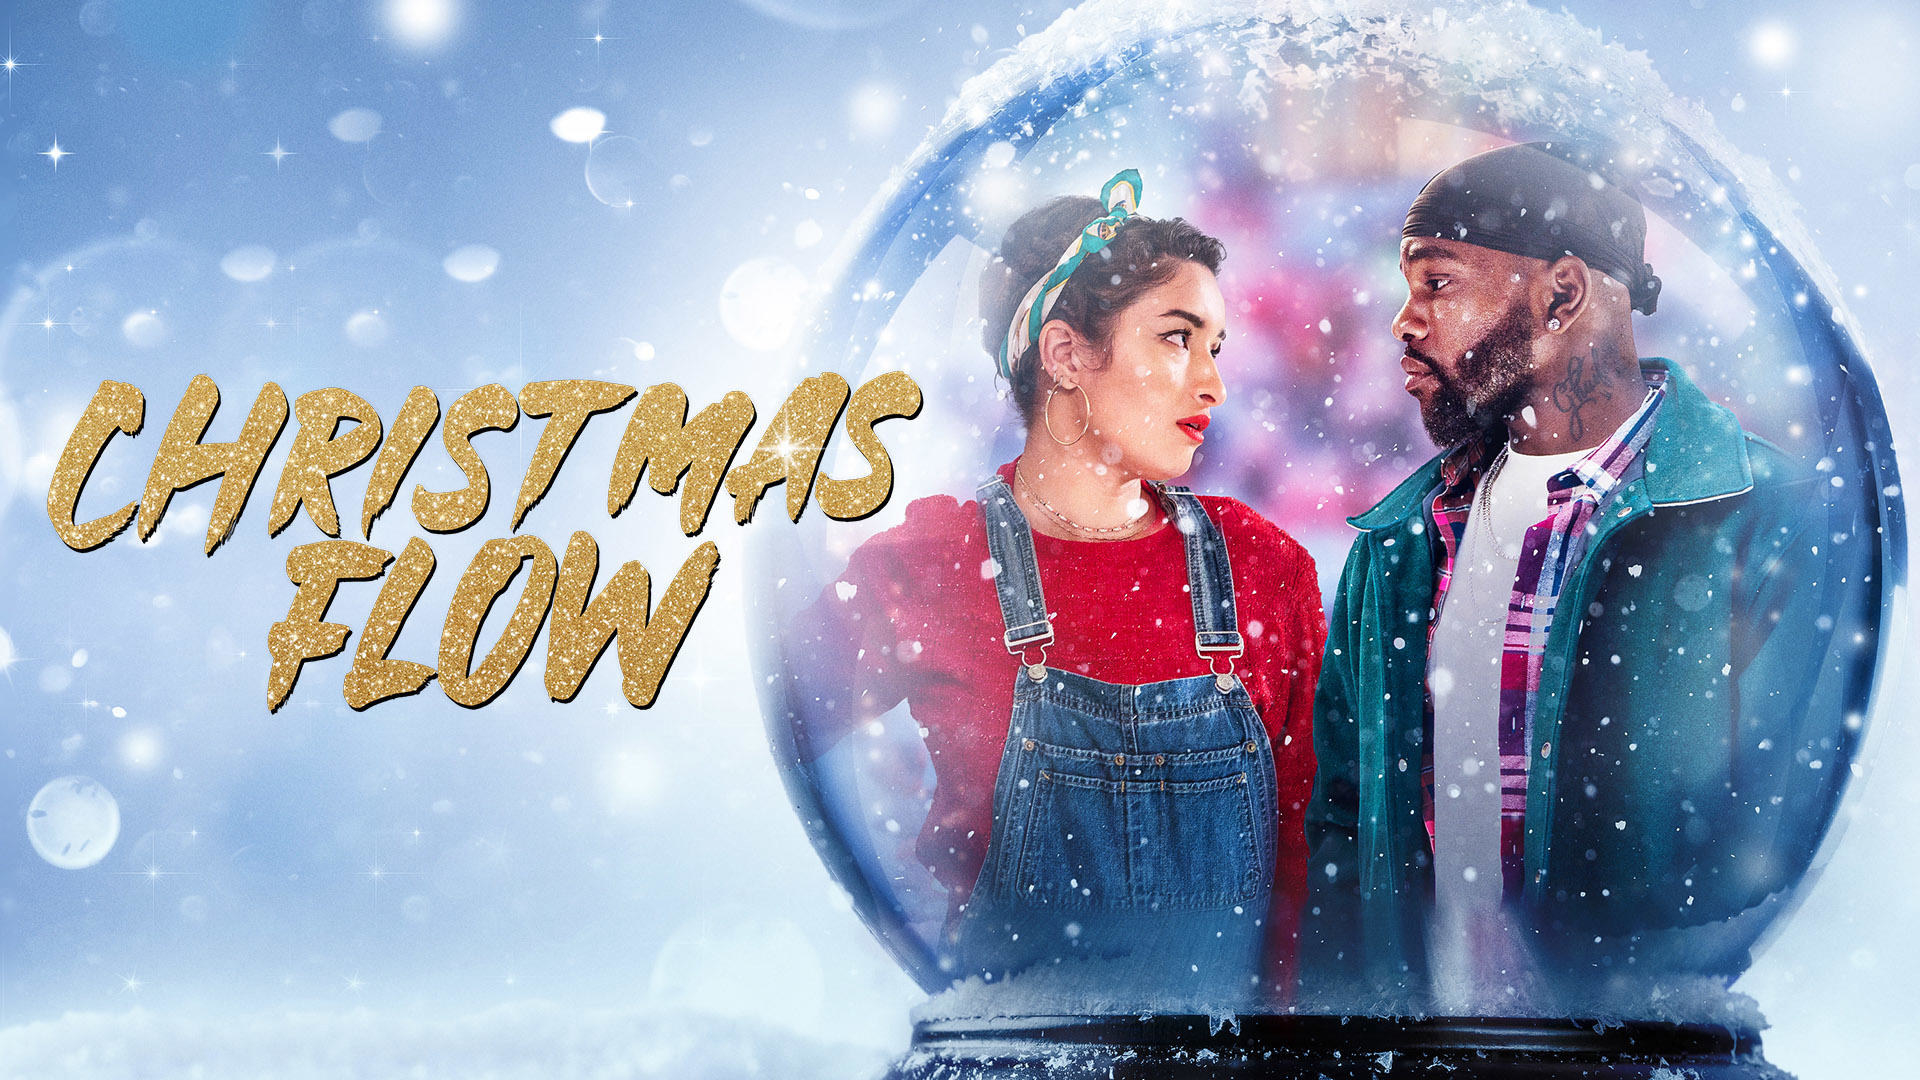 Two people pictured inside of a snow globe